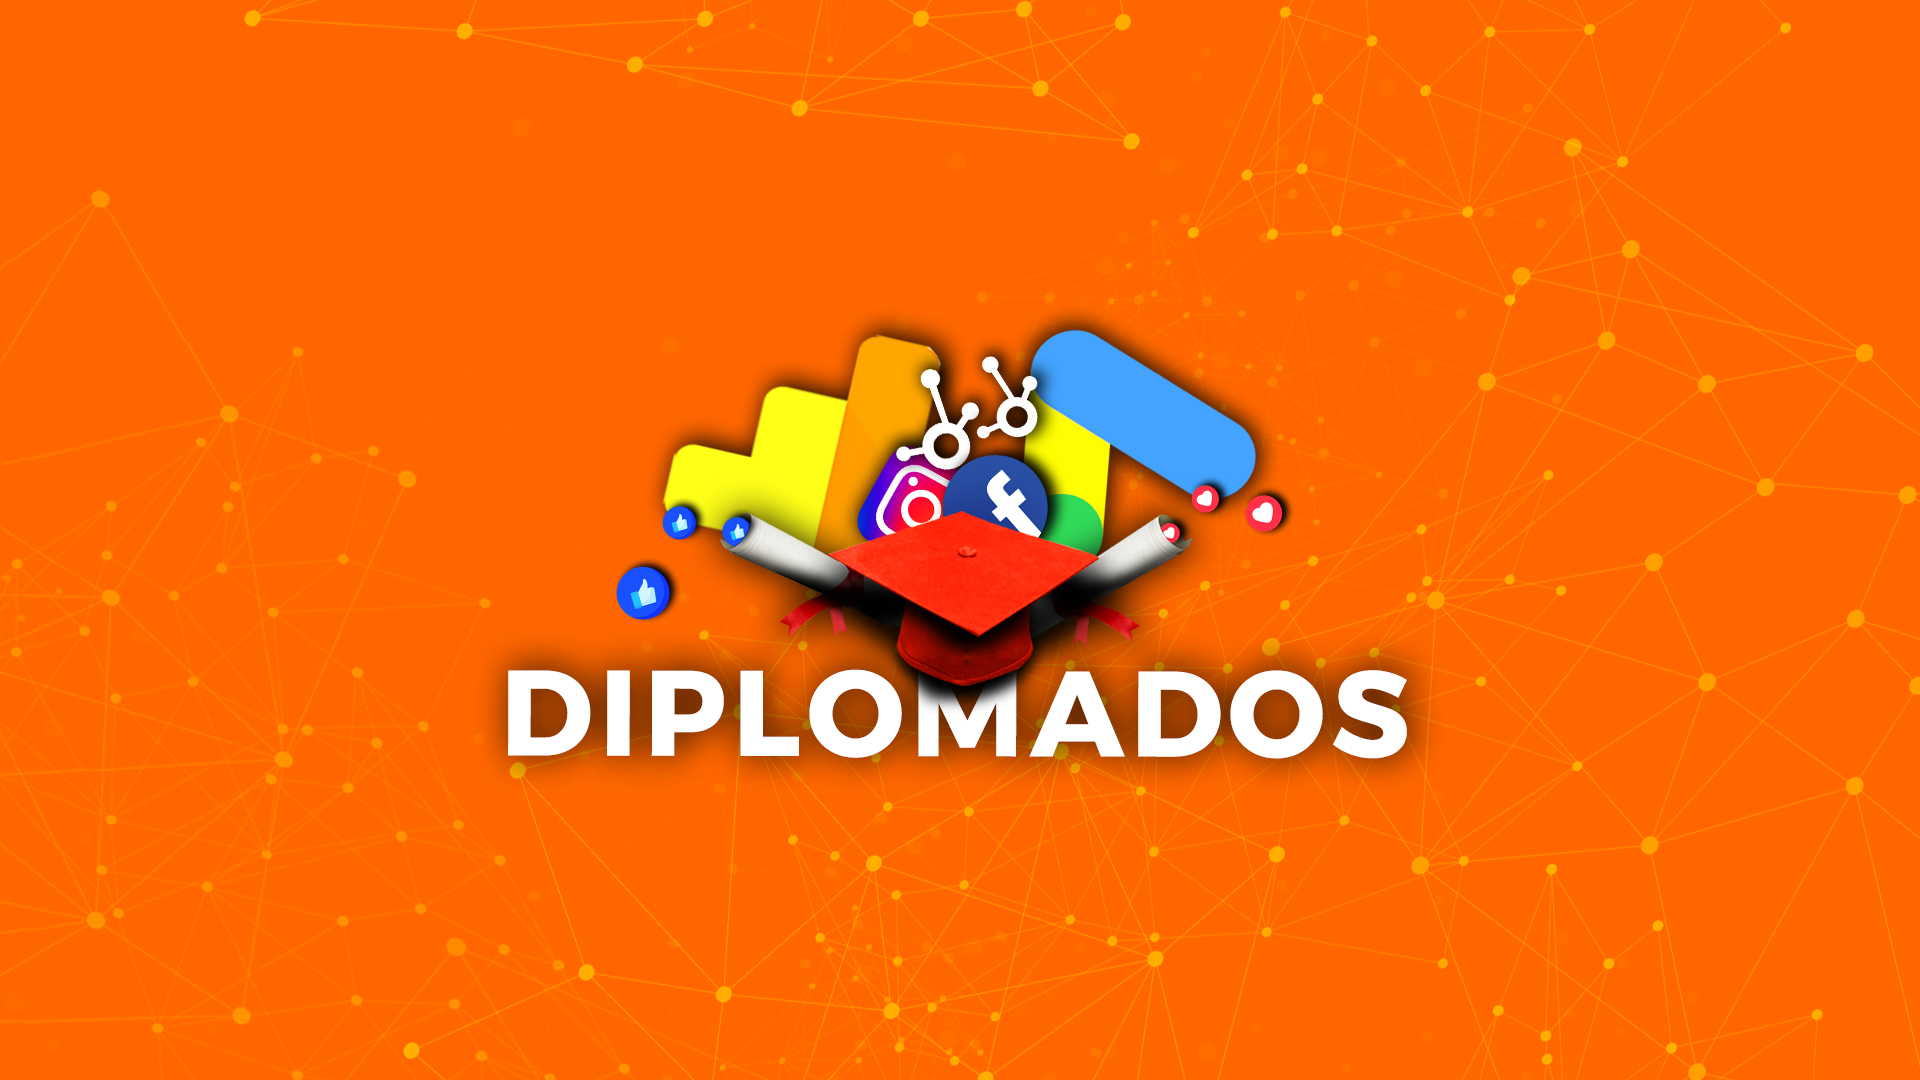 marketing-online-diplomados-oferta-academica